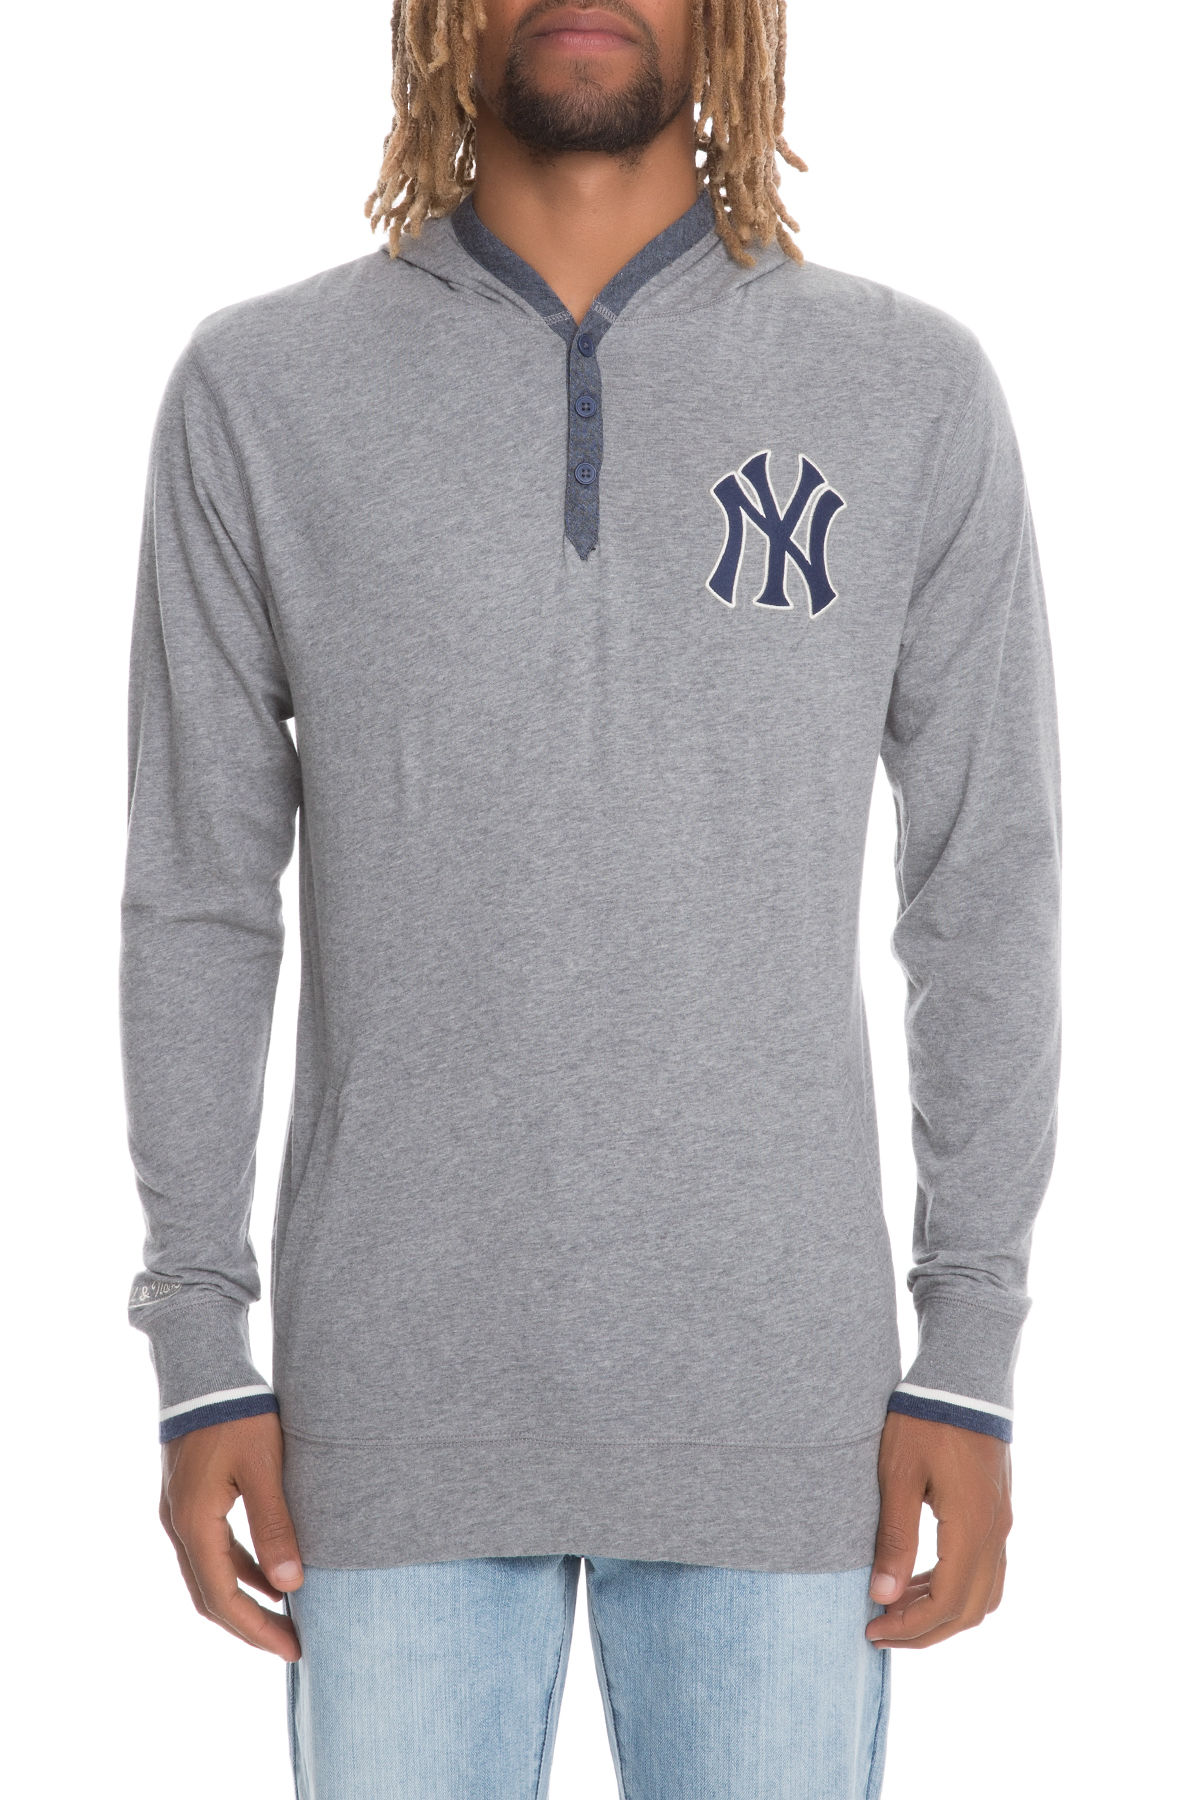 reputable site d7e16 8b20d The New York Yankees Seal The Win Hooded longsleeve in Grey Heather